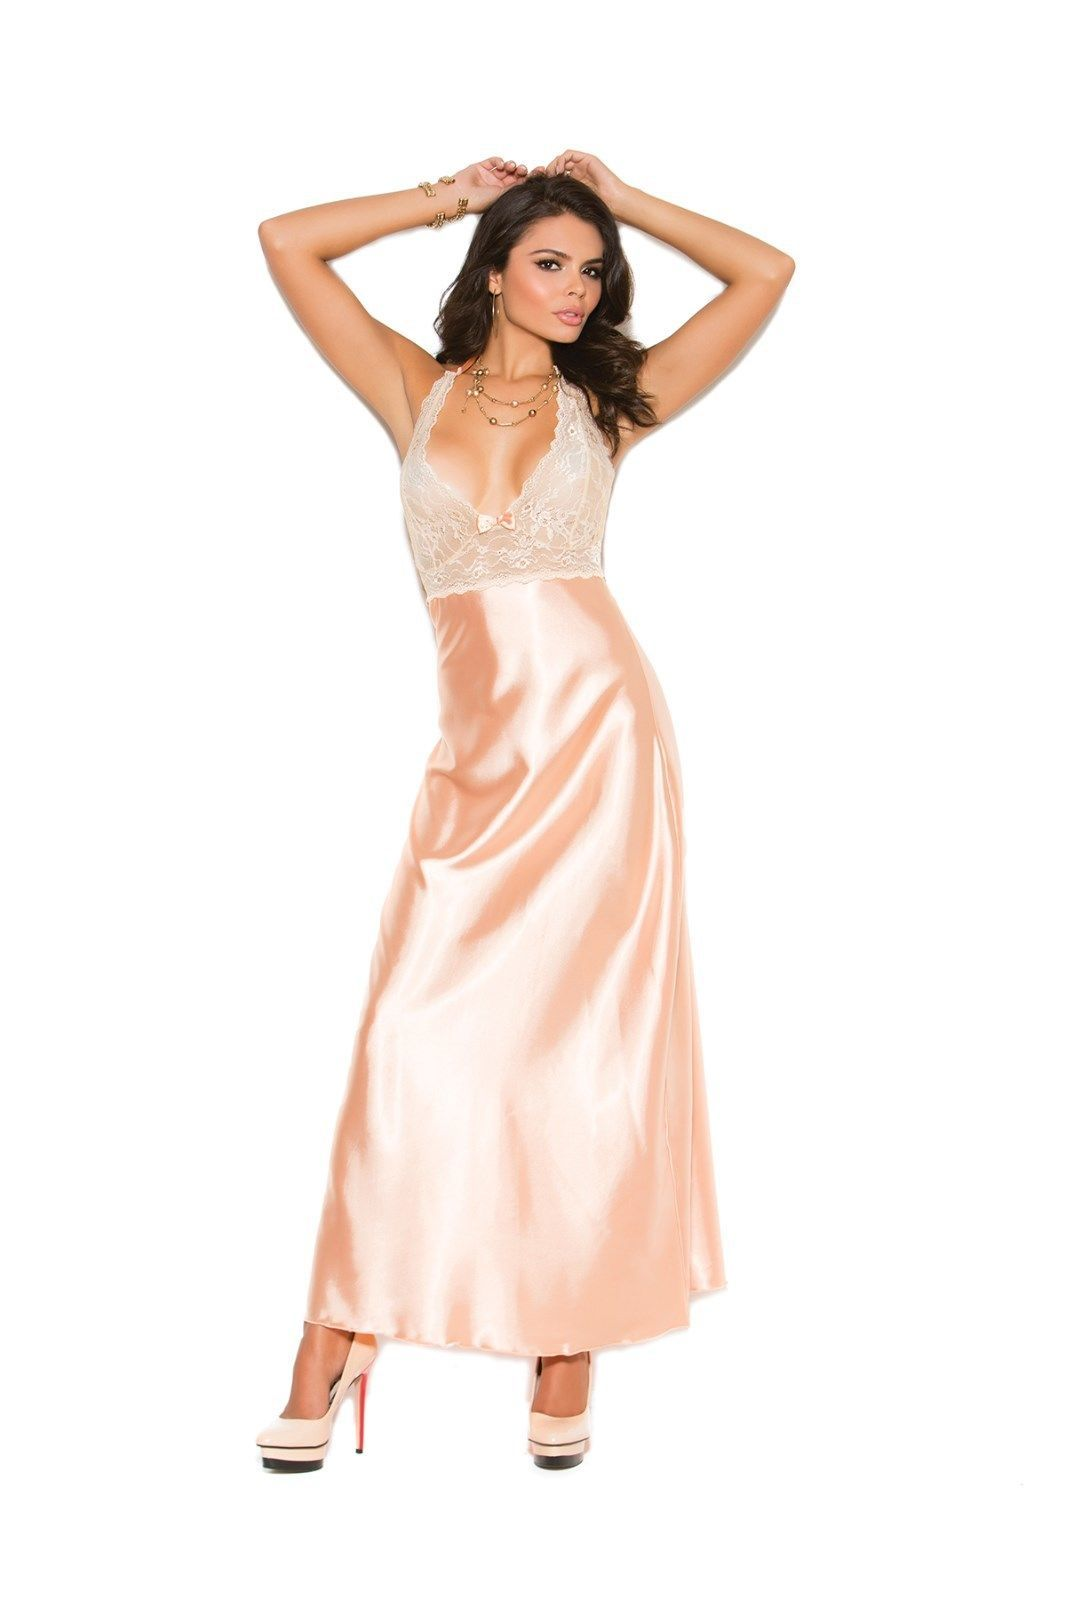 Satin Nightgown Long Peach Lace Solid Gown Halter S-3X Plus Elegant Moments 0d6ad550d